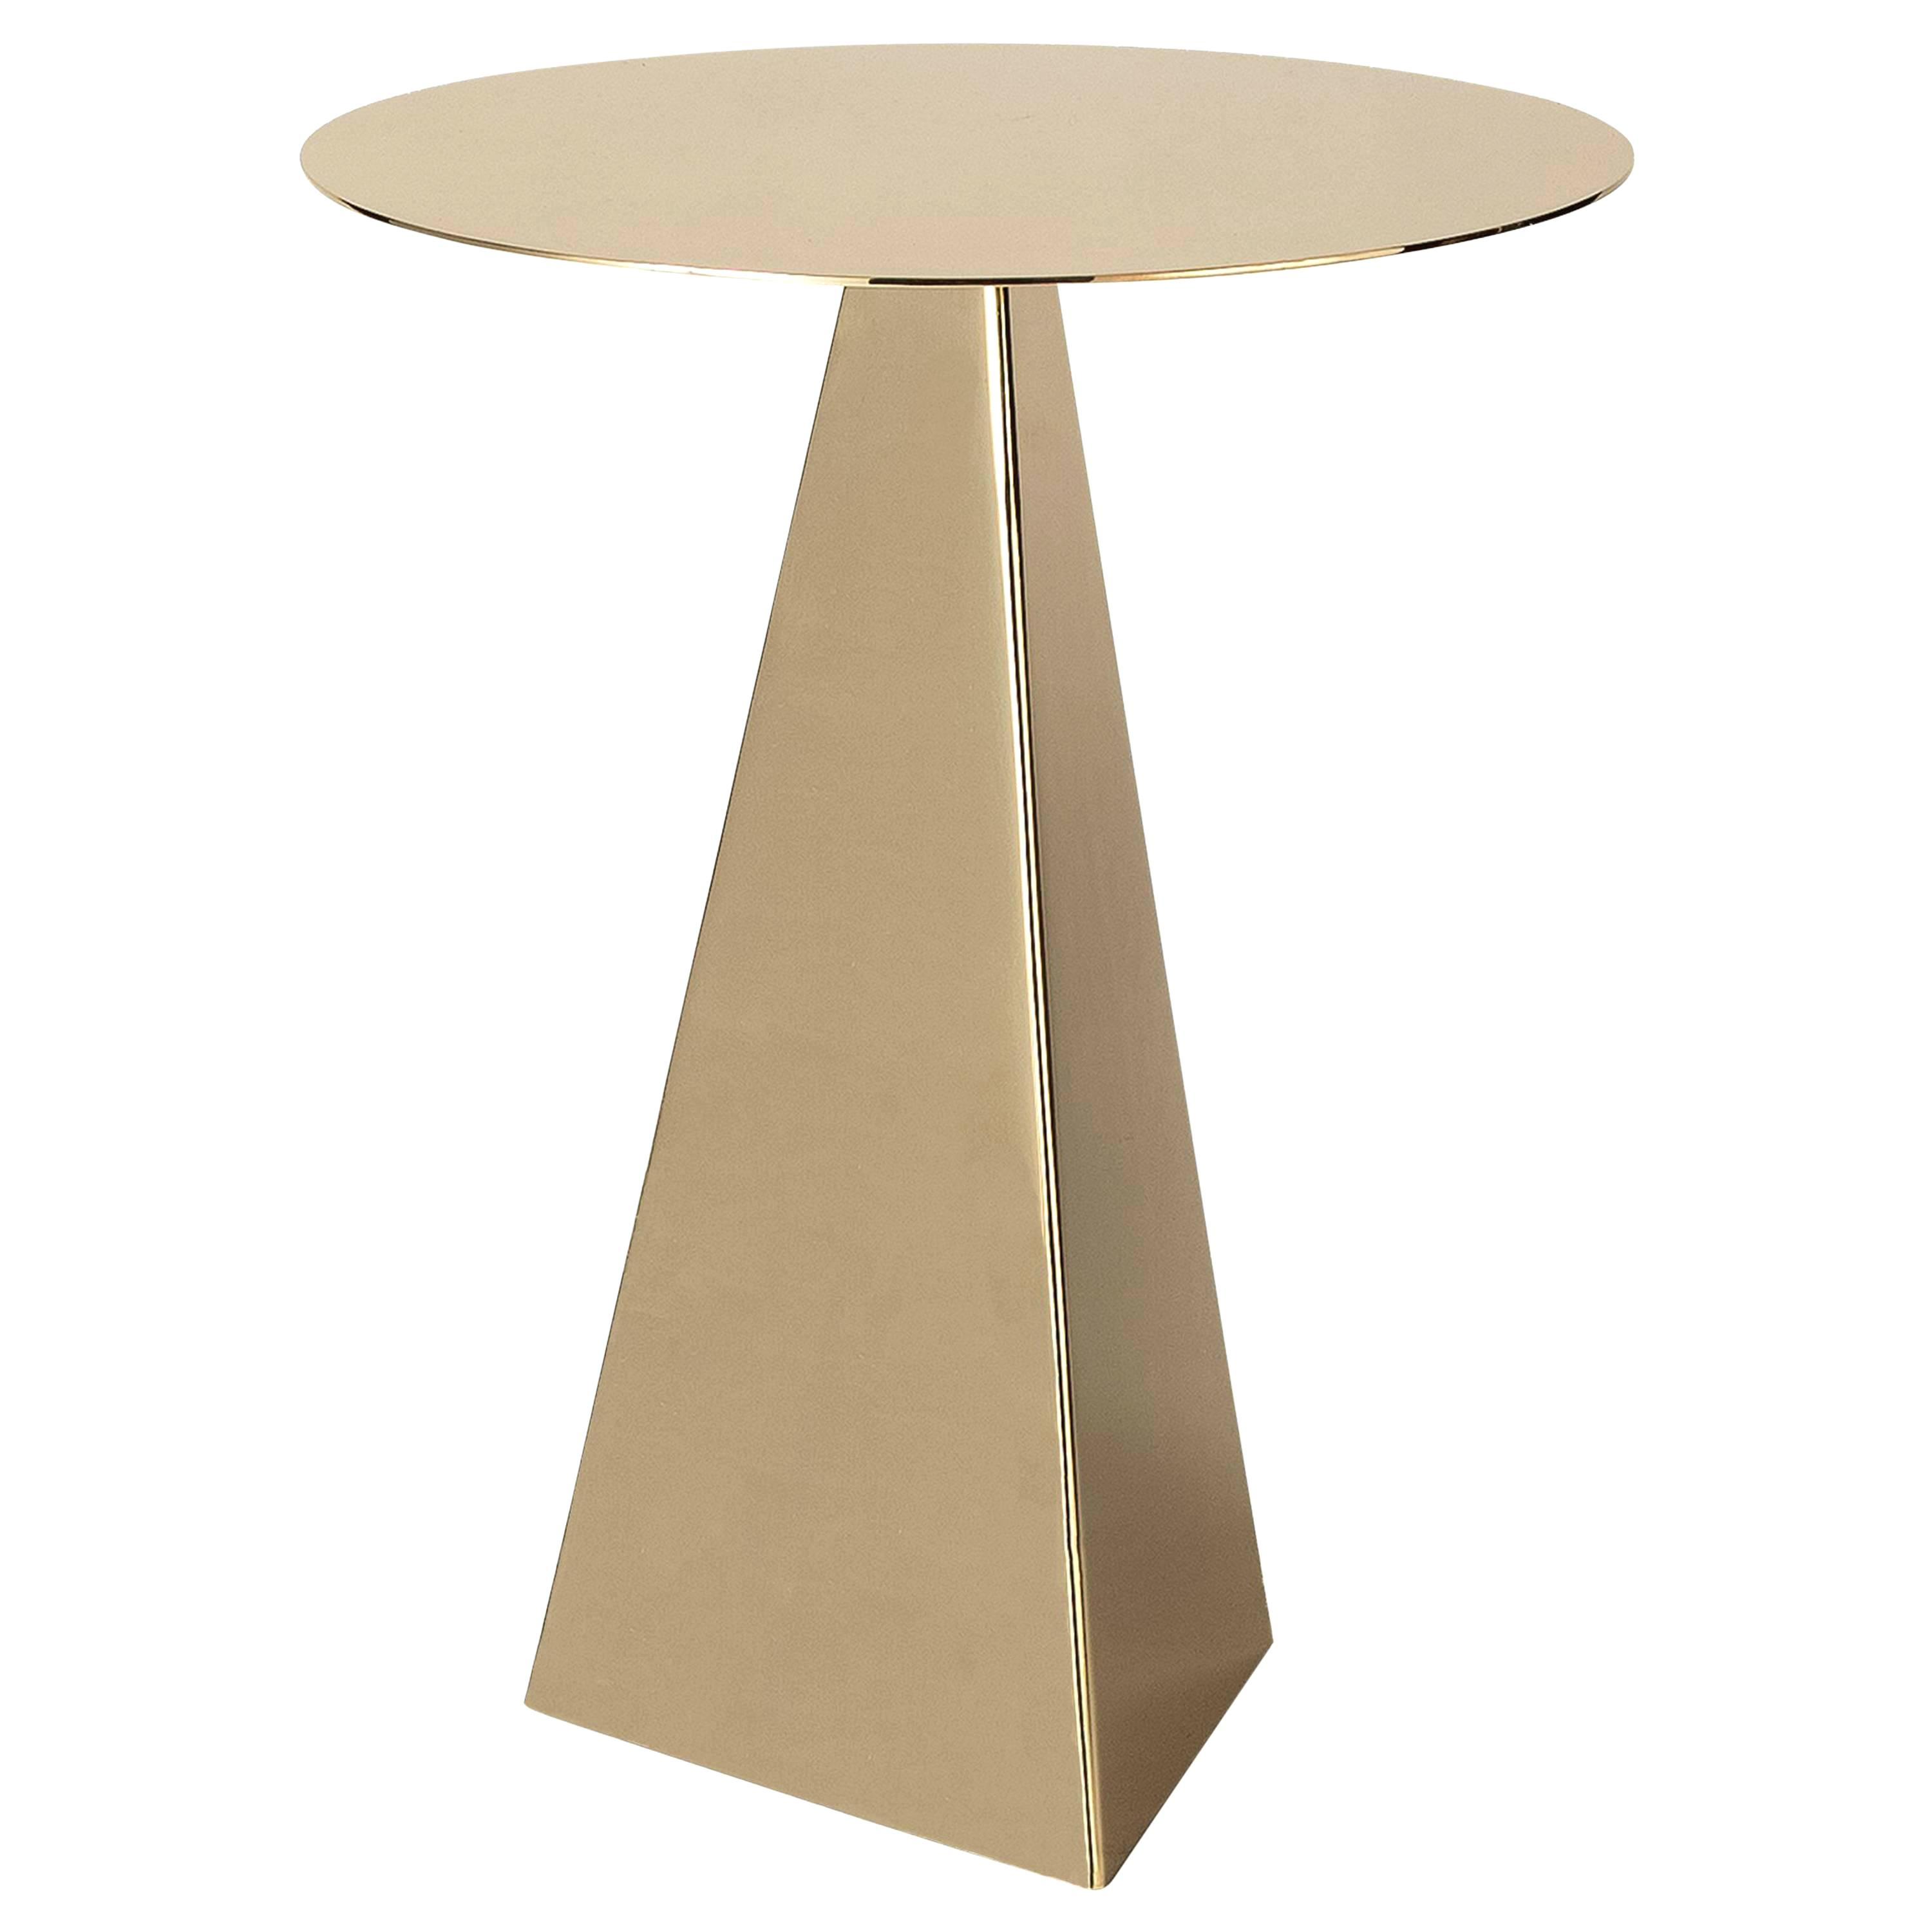 triangle side table triangular end plans armour polished brass for living room furniture small accent folding outdoor coffee grey patterned armchair glass front cabinet butler